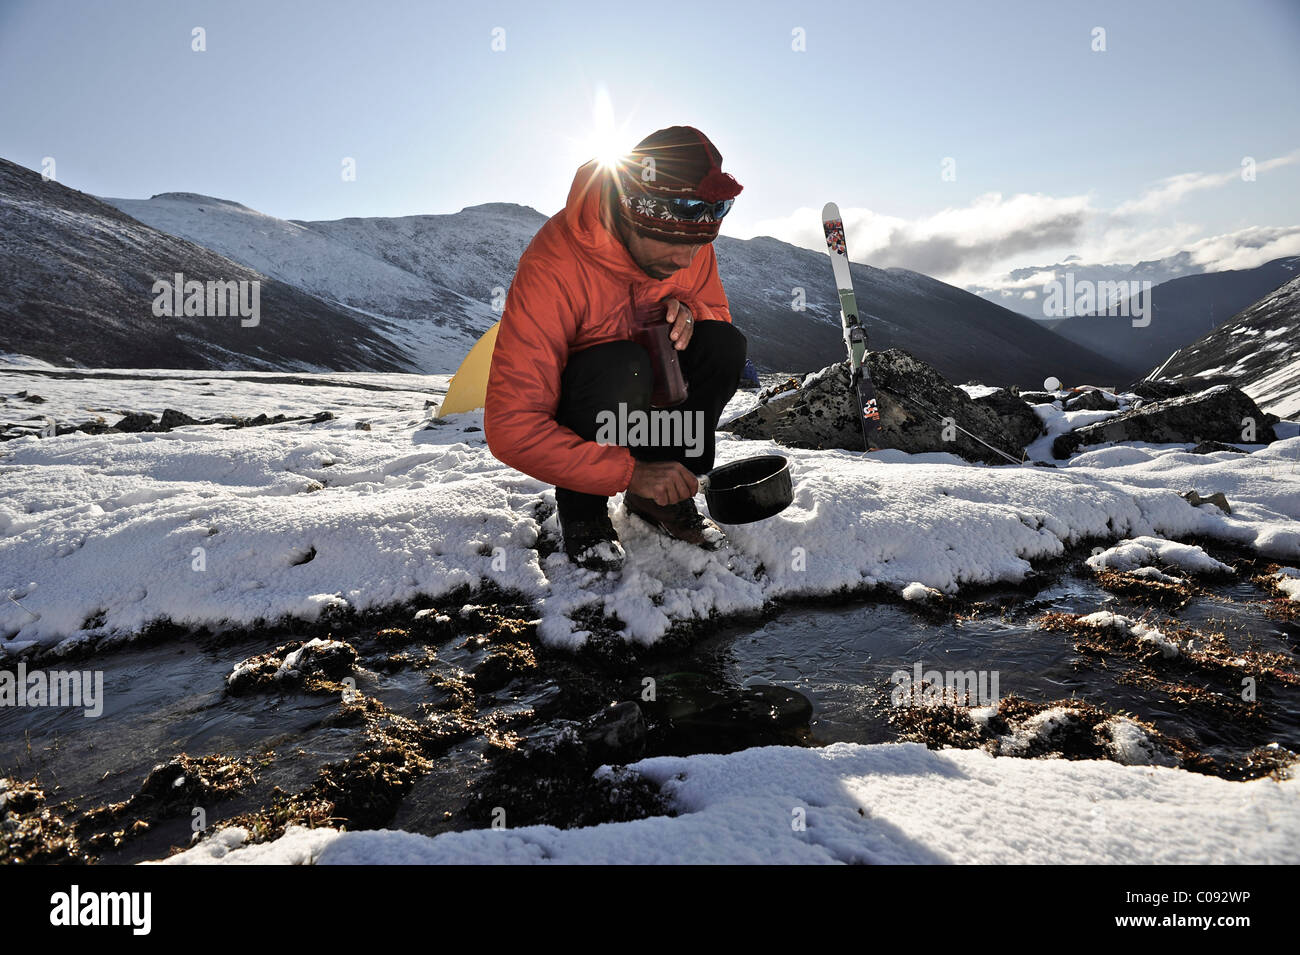 Backpacker fills pan with water from a creek at an alpine camp below Mt. Chamberlin, Brooks Range, ANWR, Arctic - Stock Image